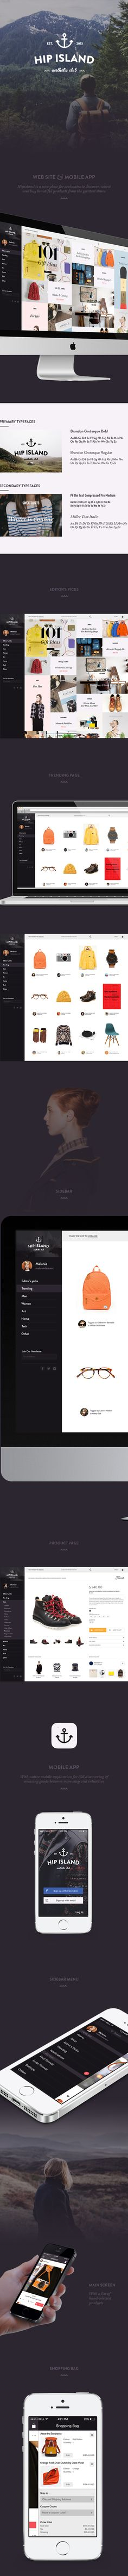 Hip Island by Eugene Maksymchuk, via Behance